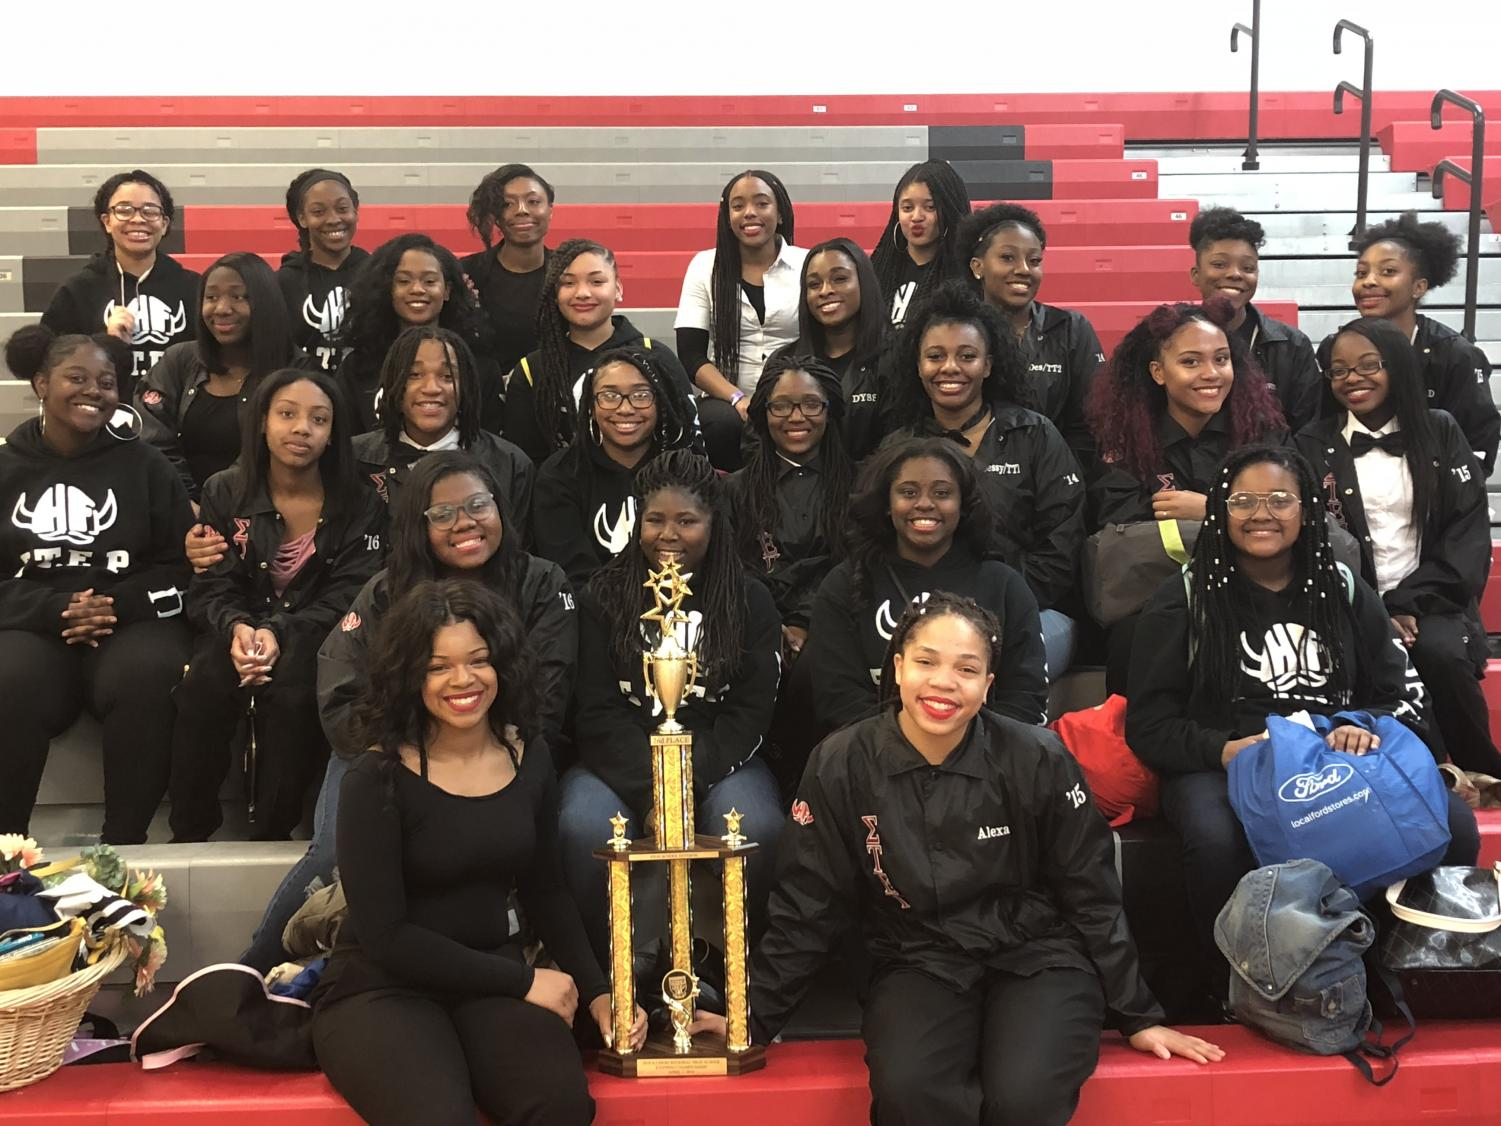 Champions!:  The H-F Step team posing for a picture as they win the 2018 USA Youth step championship. They received a grand prize of 4,000 dollars.